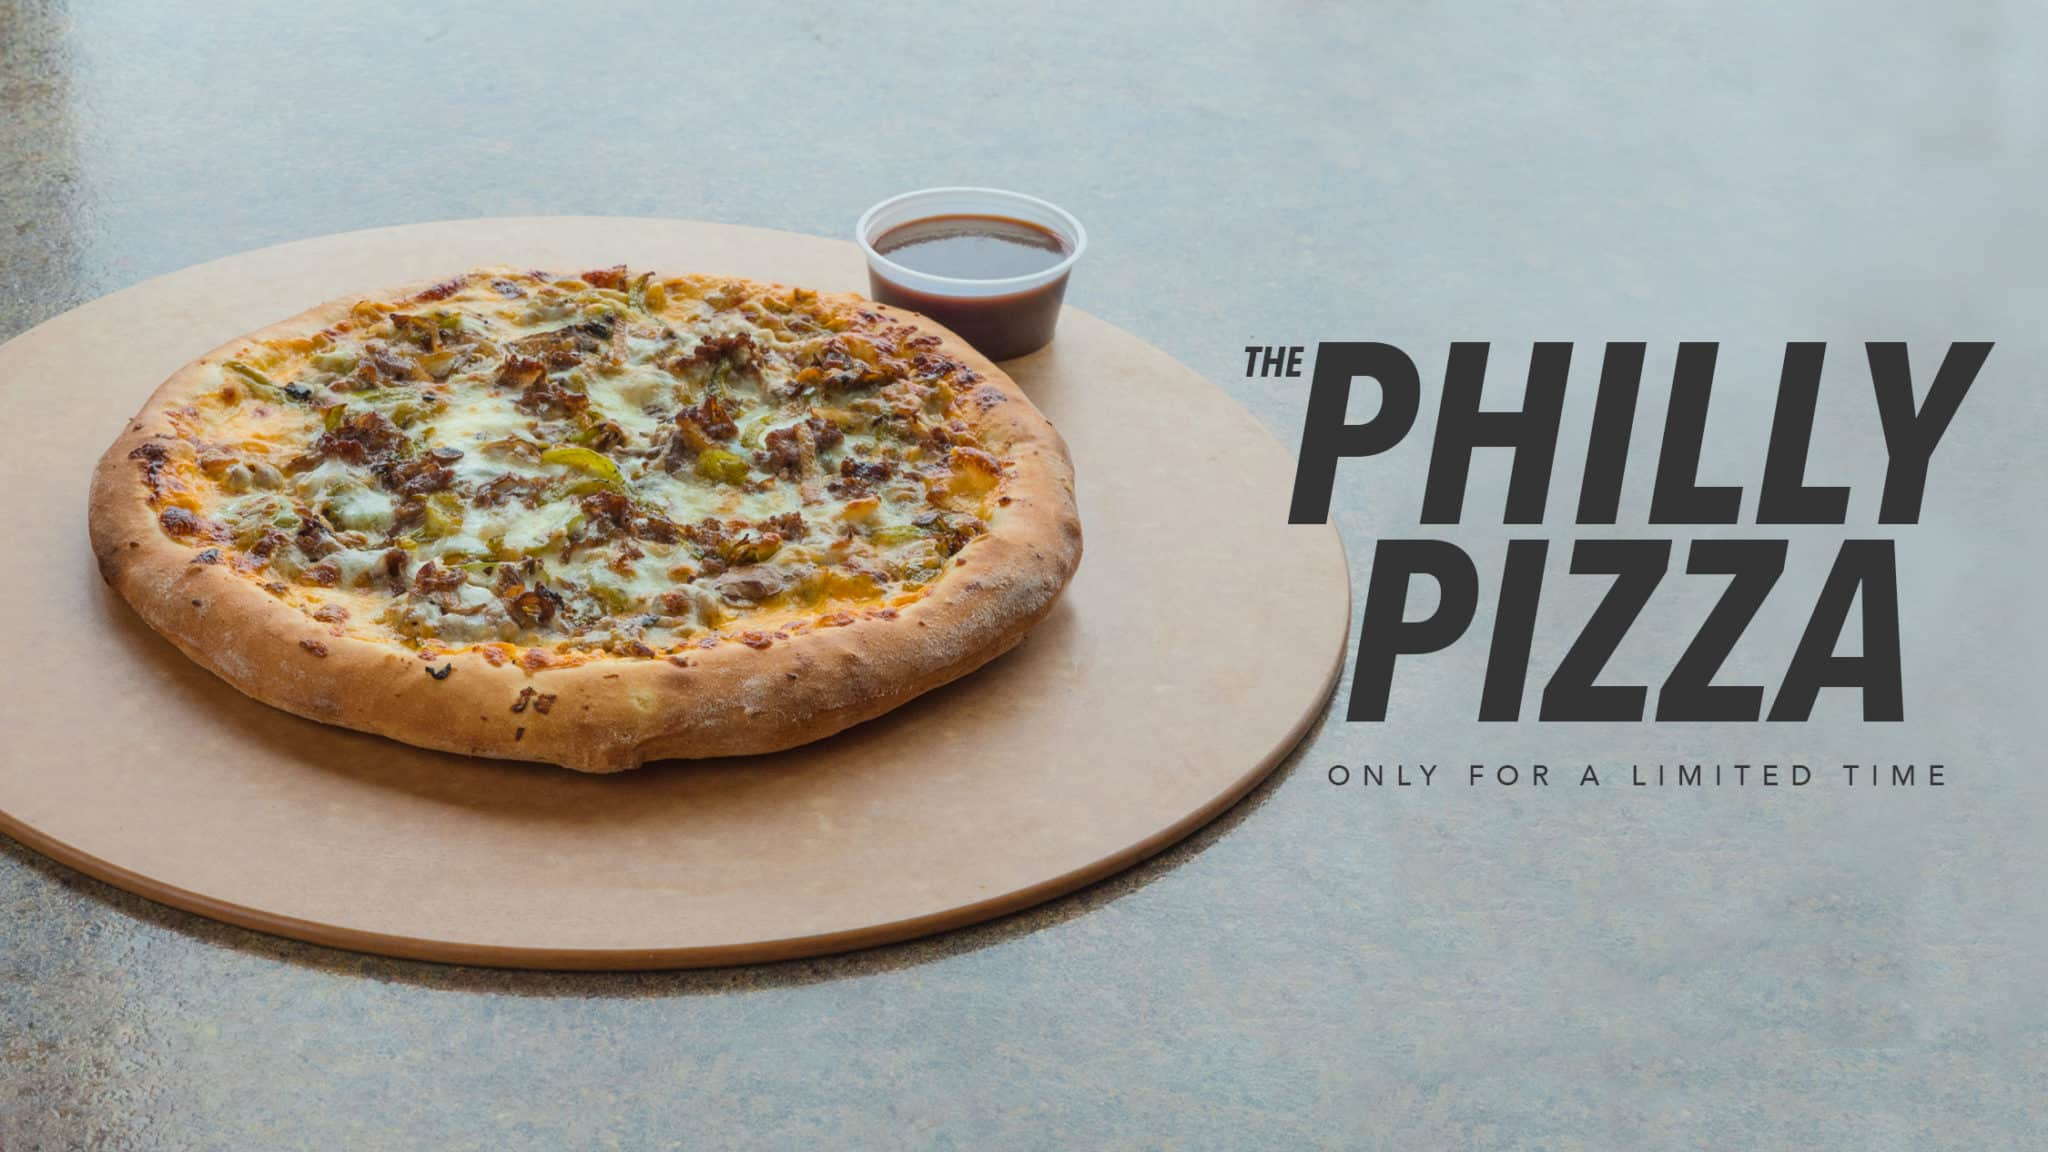 The Philly Pizza - Zio's Pizzeria